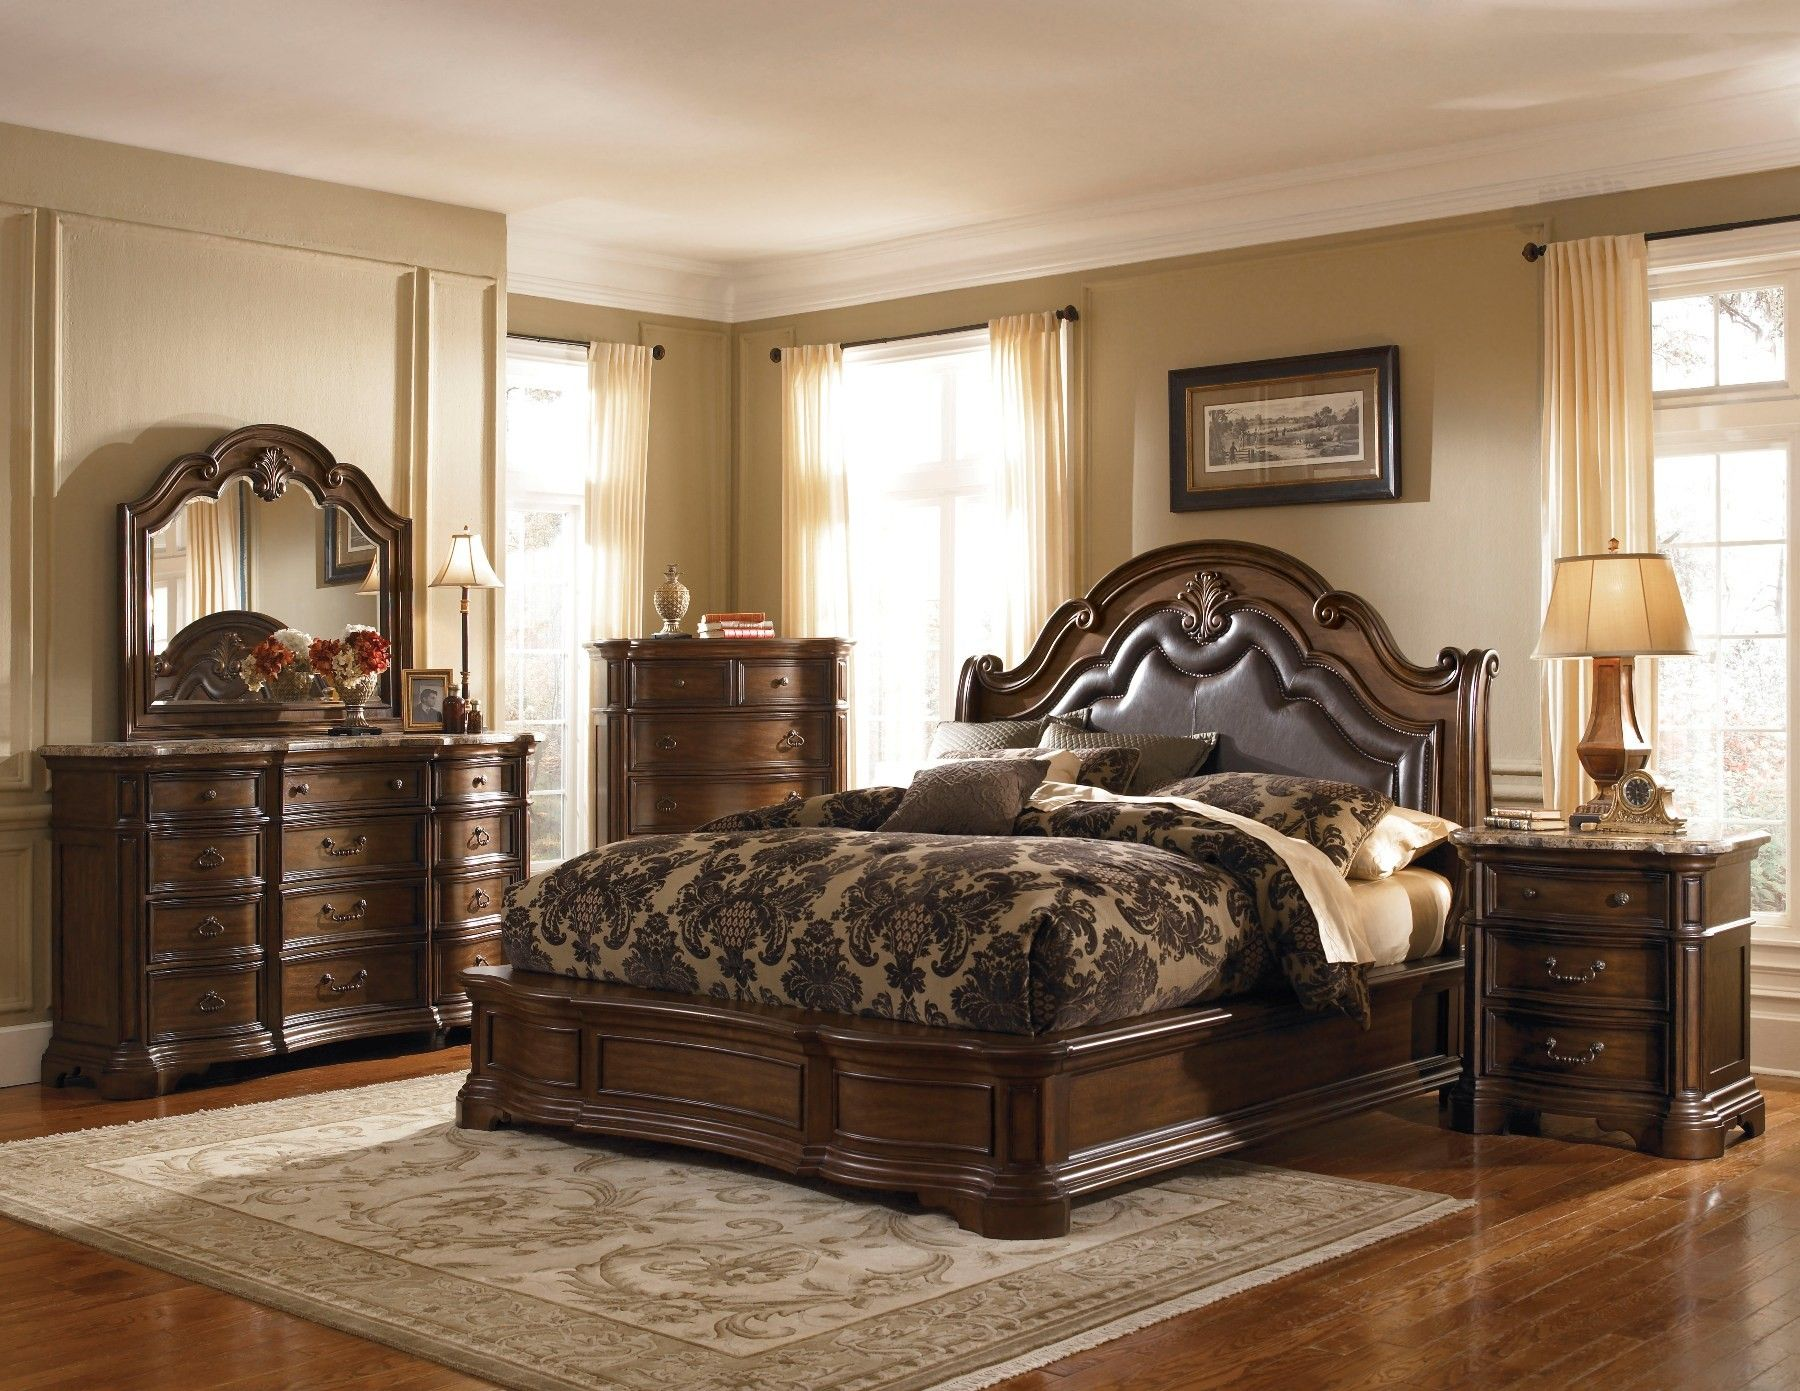 pulaski bedroom furniture wholesale closeouts courtland bedroom rh pinterest com